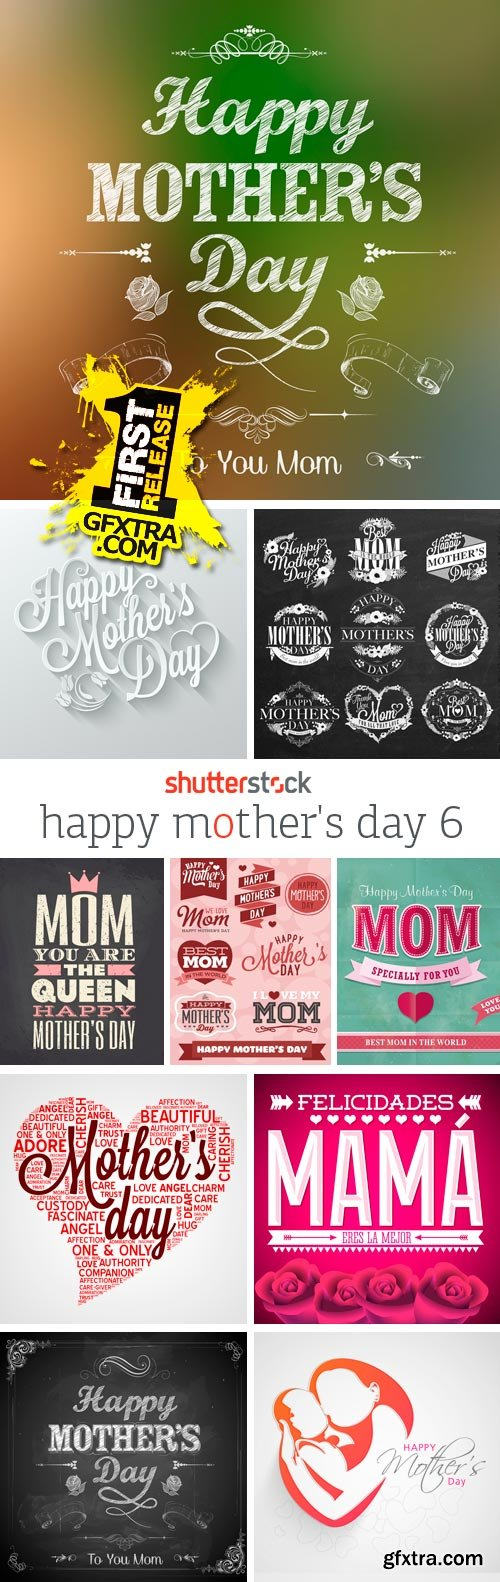 Amazing SS - Happy Mother's Day 6, 25xEPS